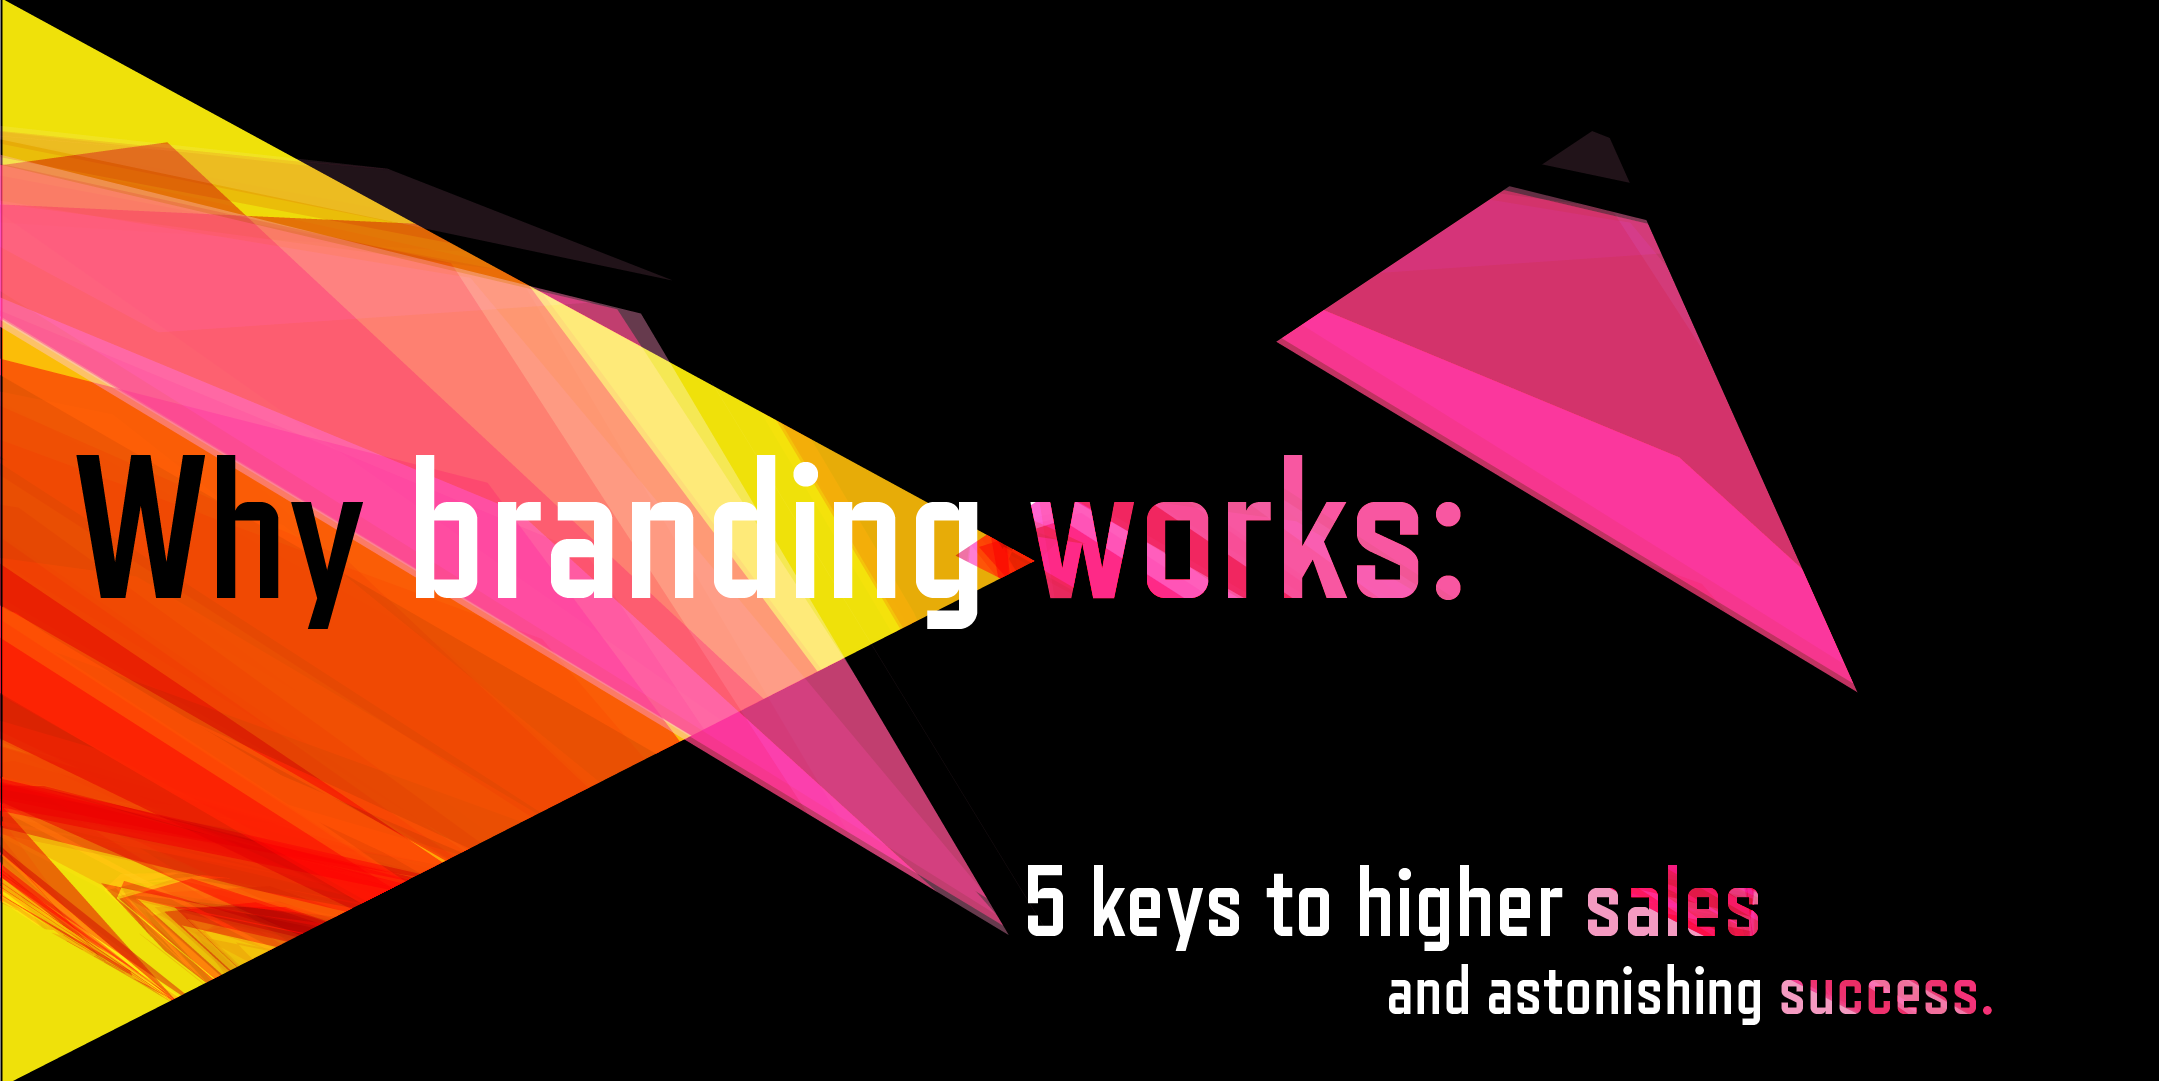 Why branding works: the 5 keys to higher sales and astonishing success (9-14)